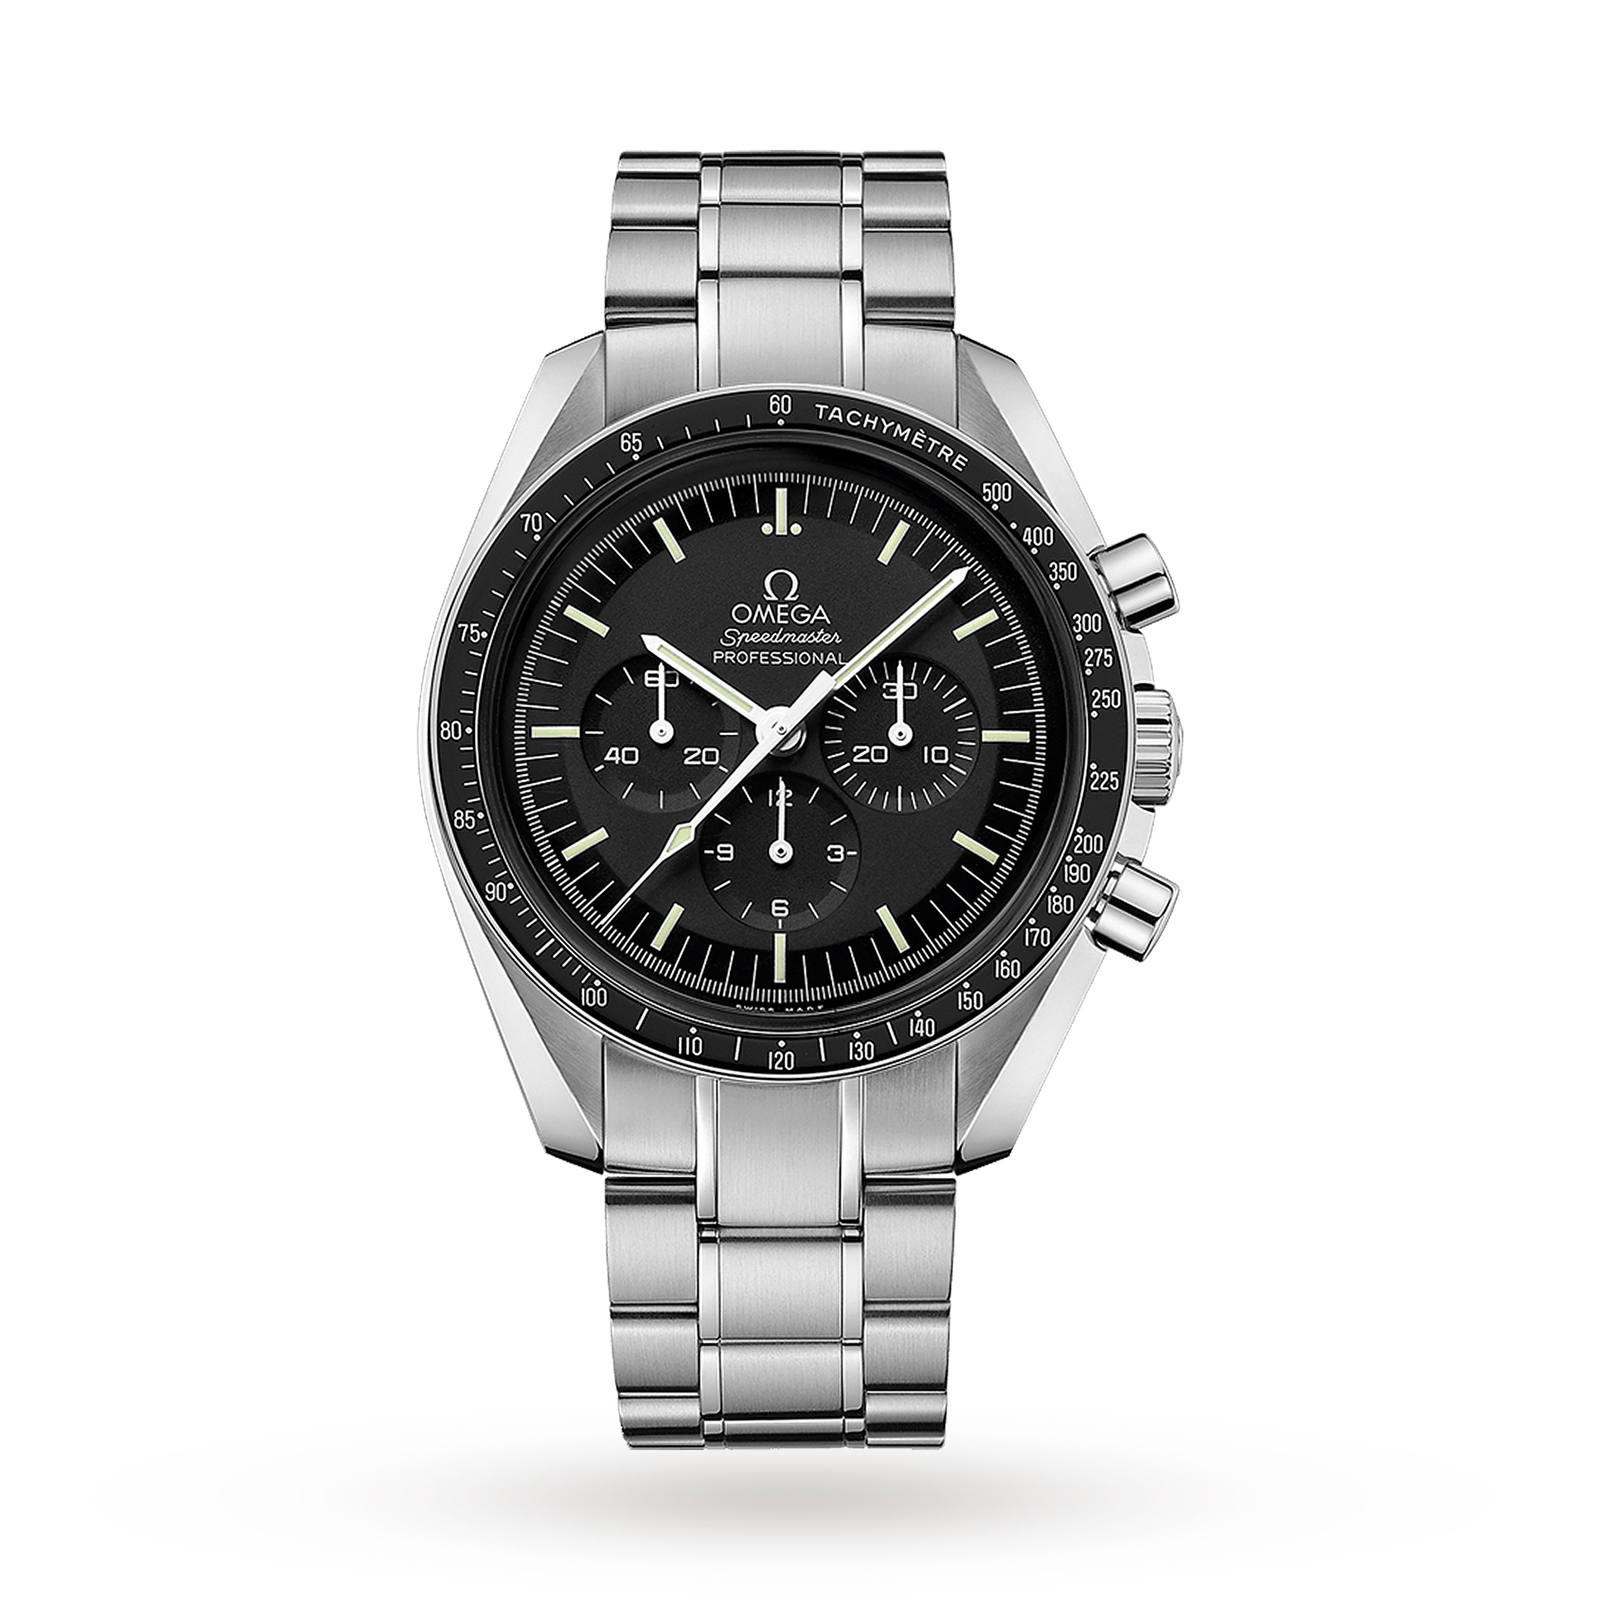 speedmaster watches youtube omega the professional moon watch